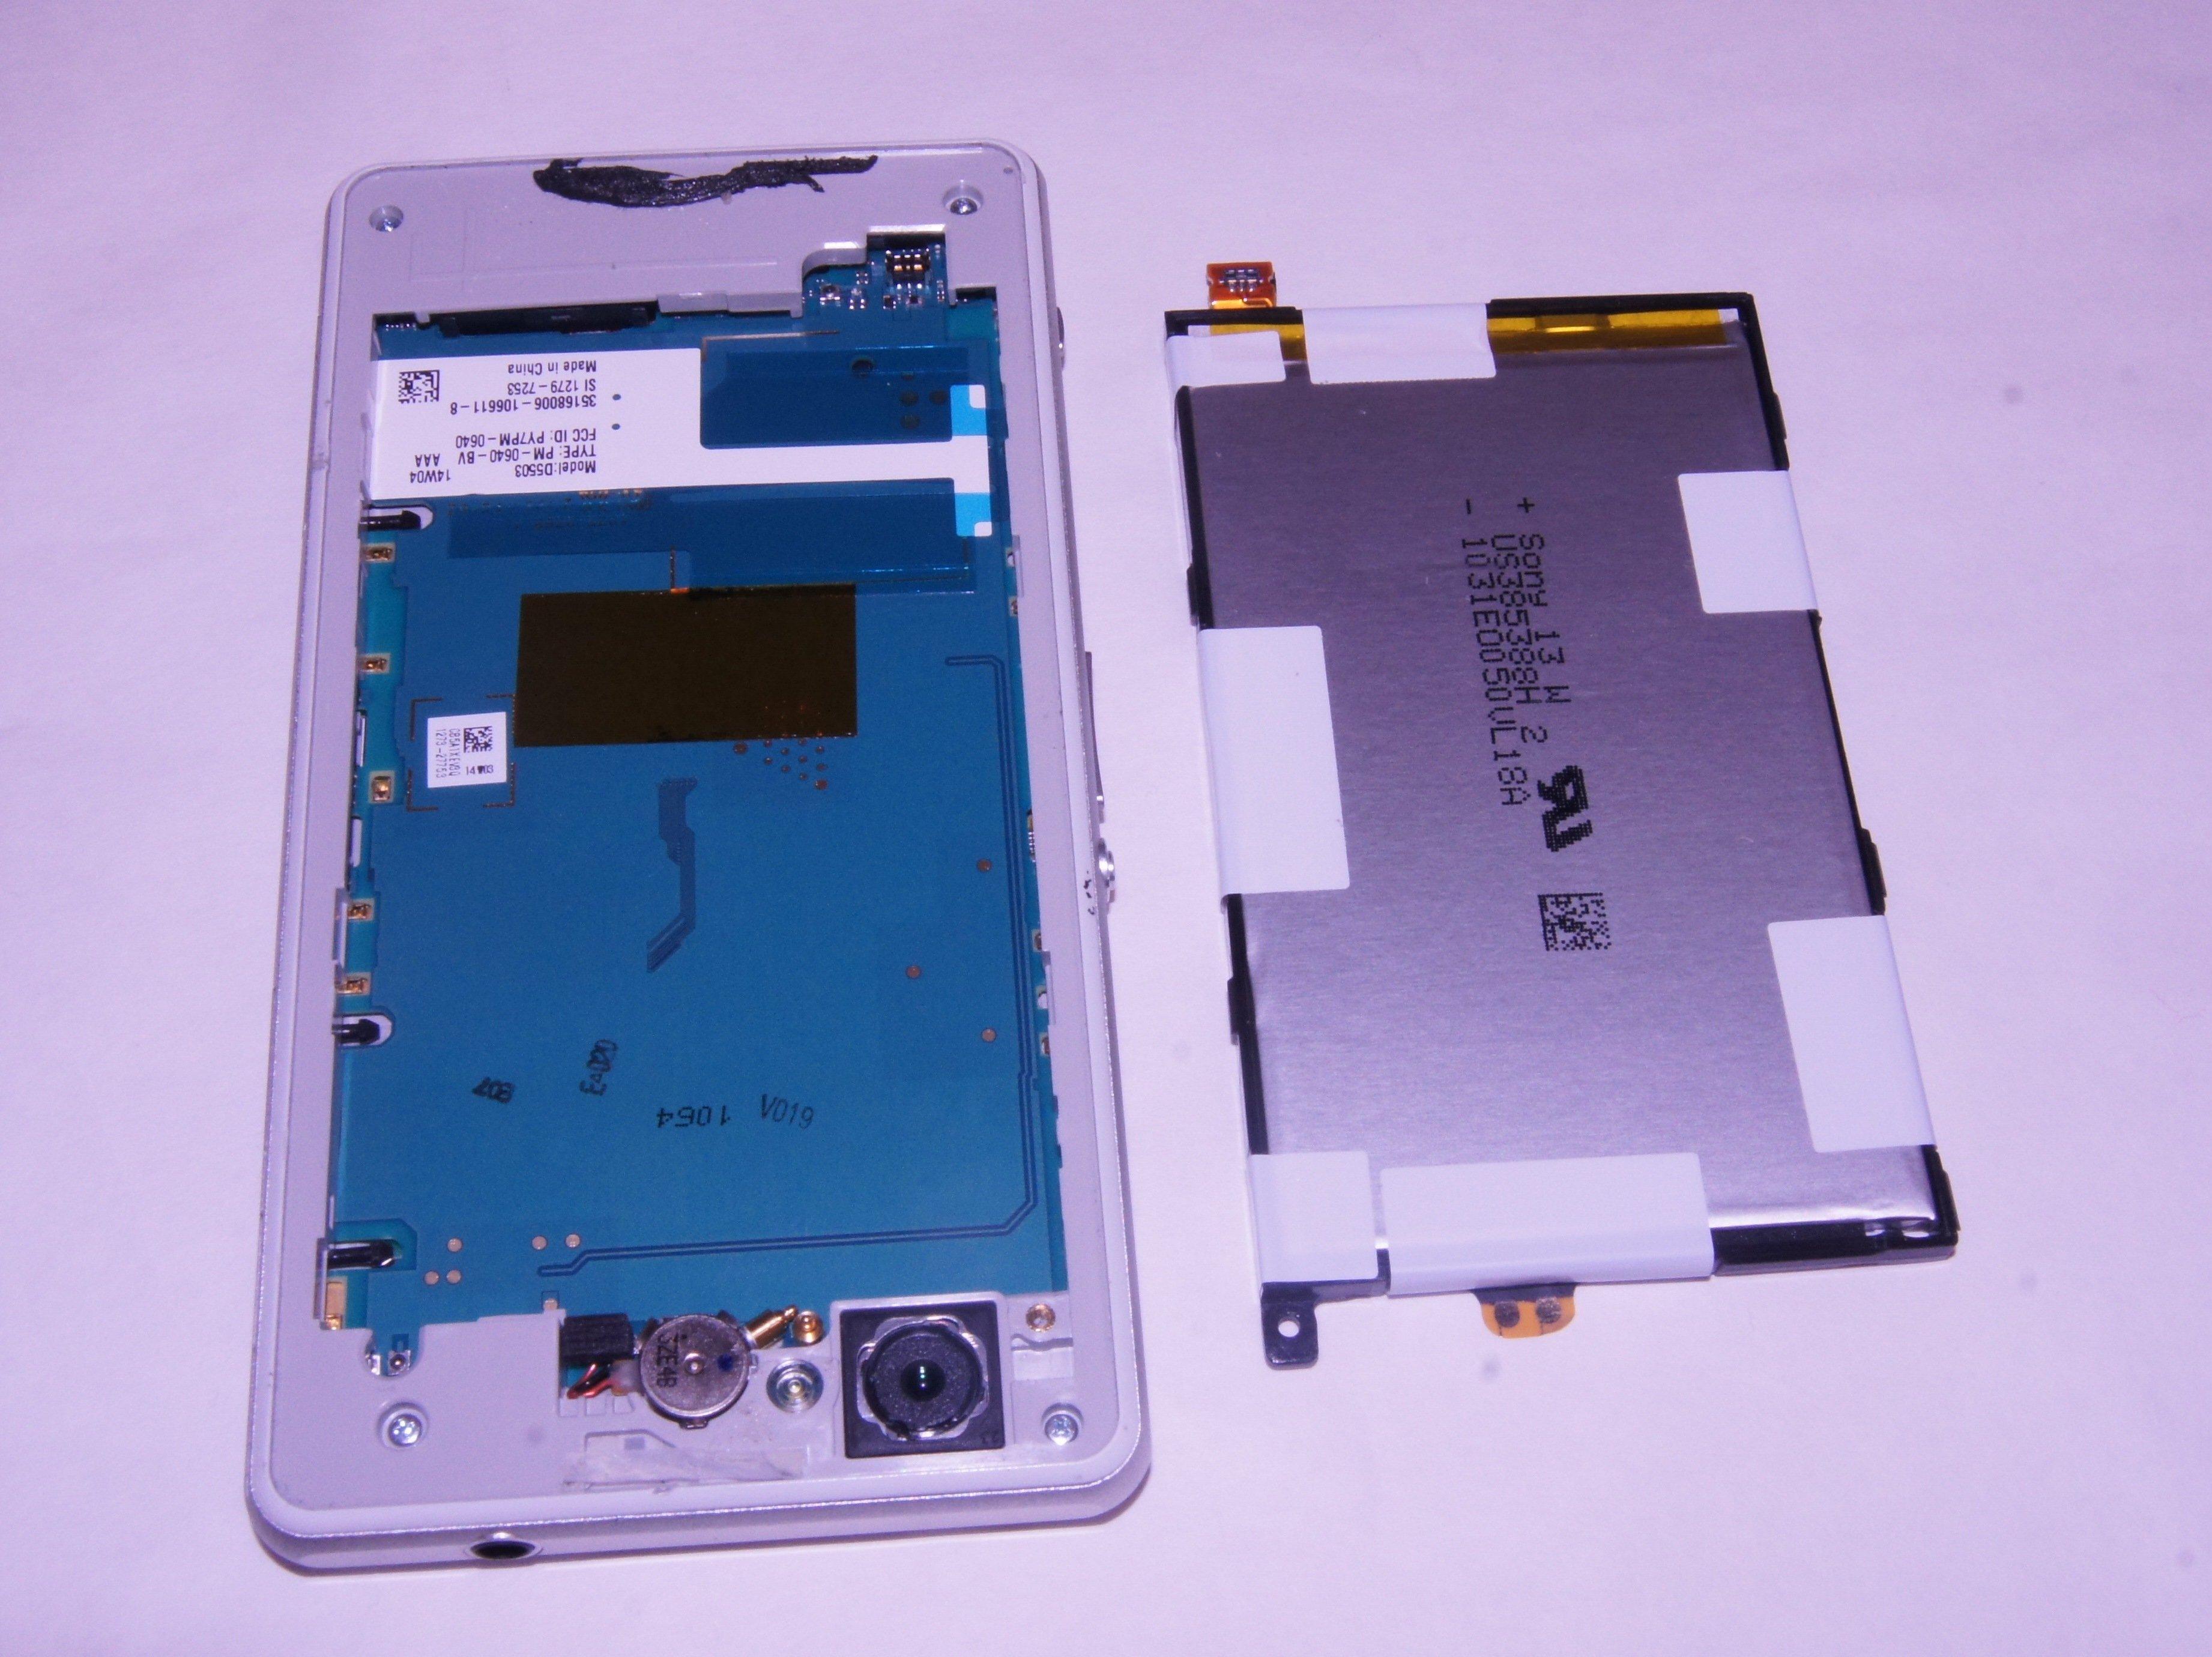 Sony Xperia Z1 Compact Battery Replacement Ifixit Repair Guide